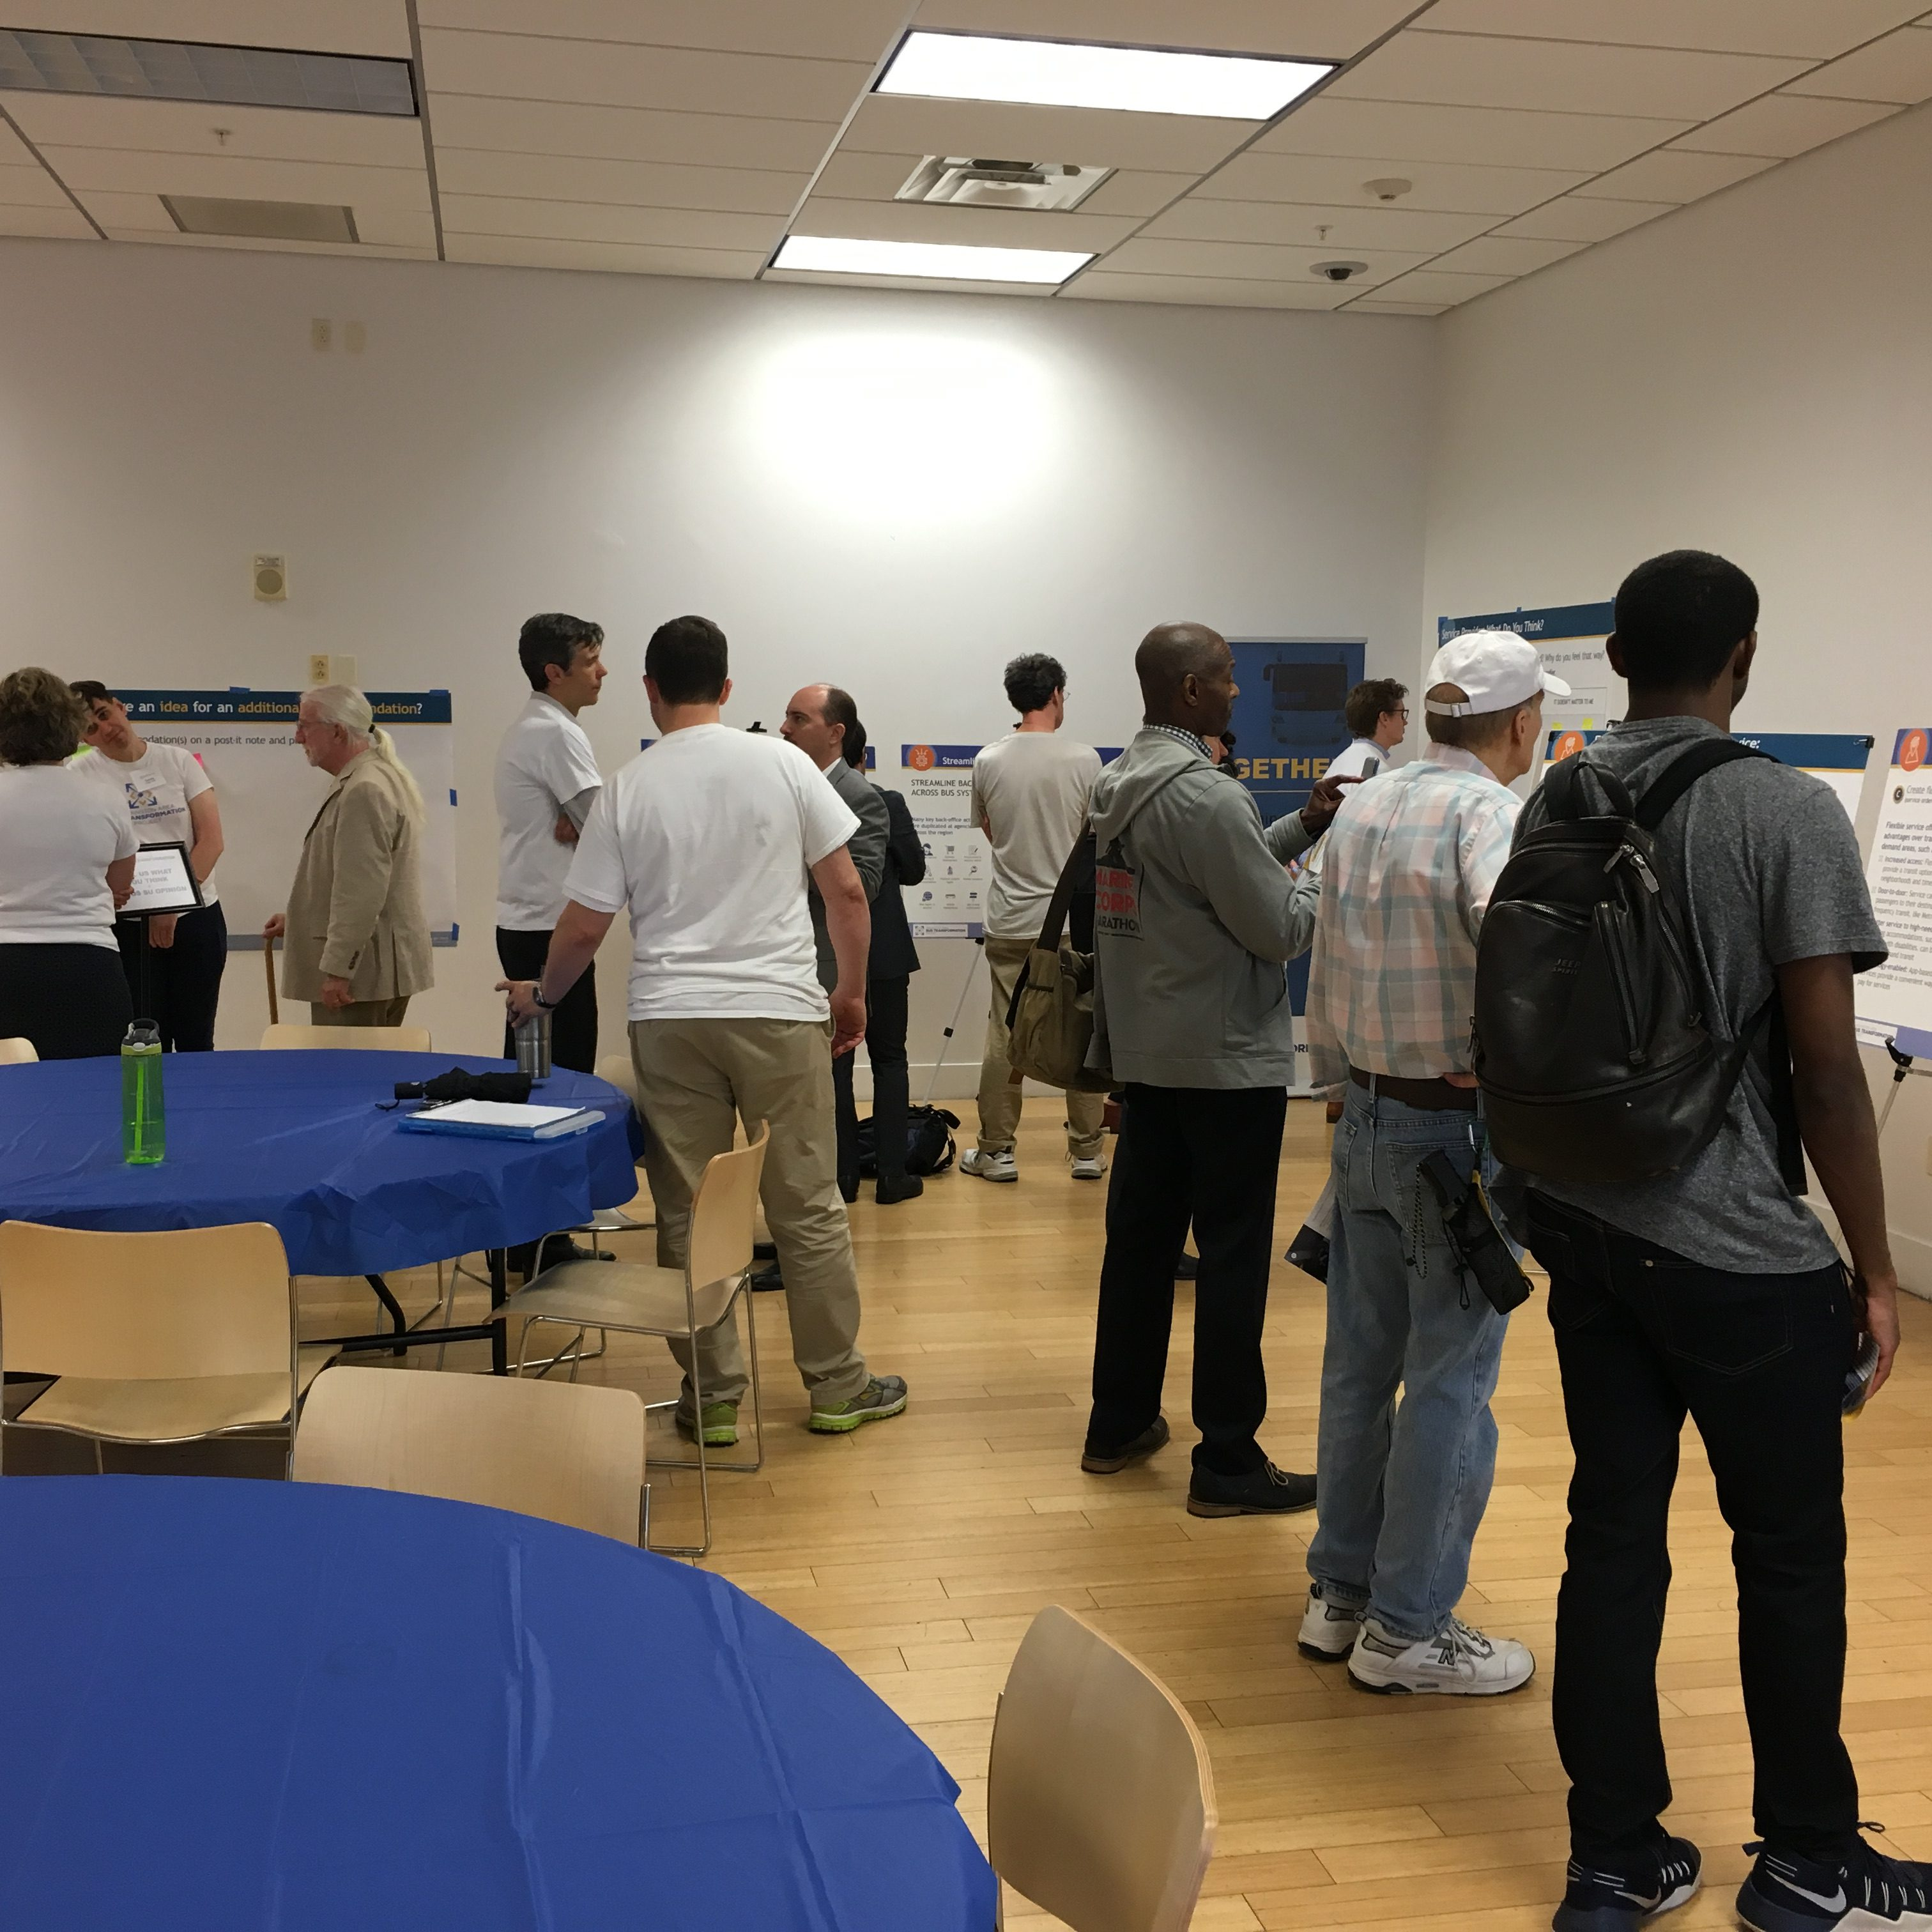 People gathered at the Maryland open house